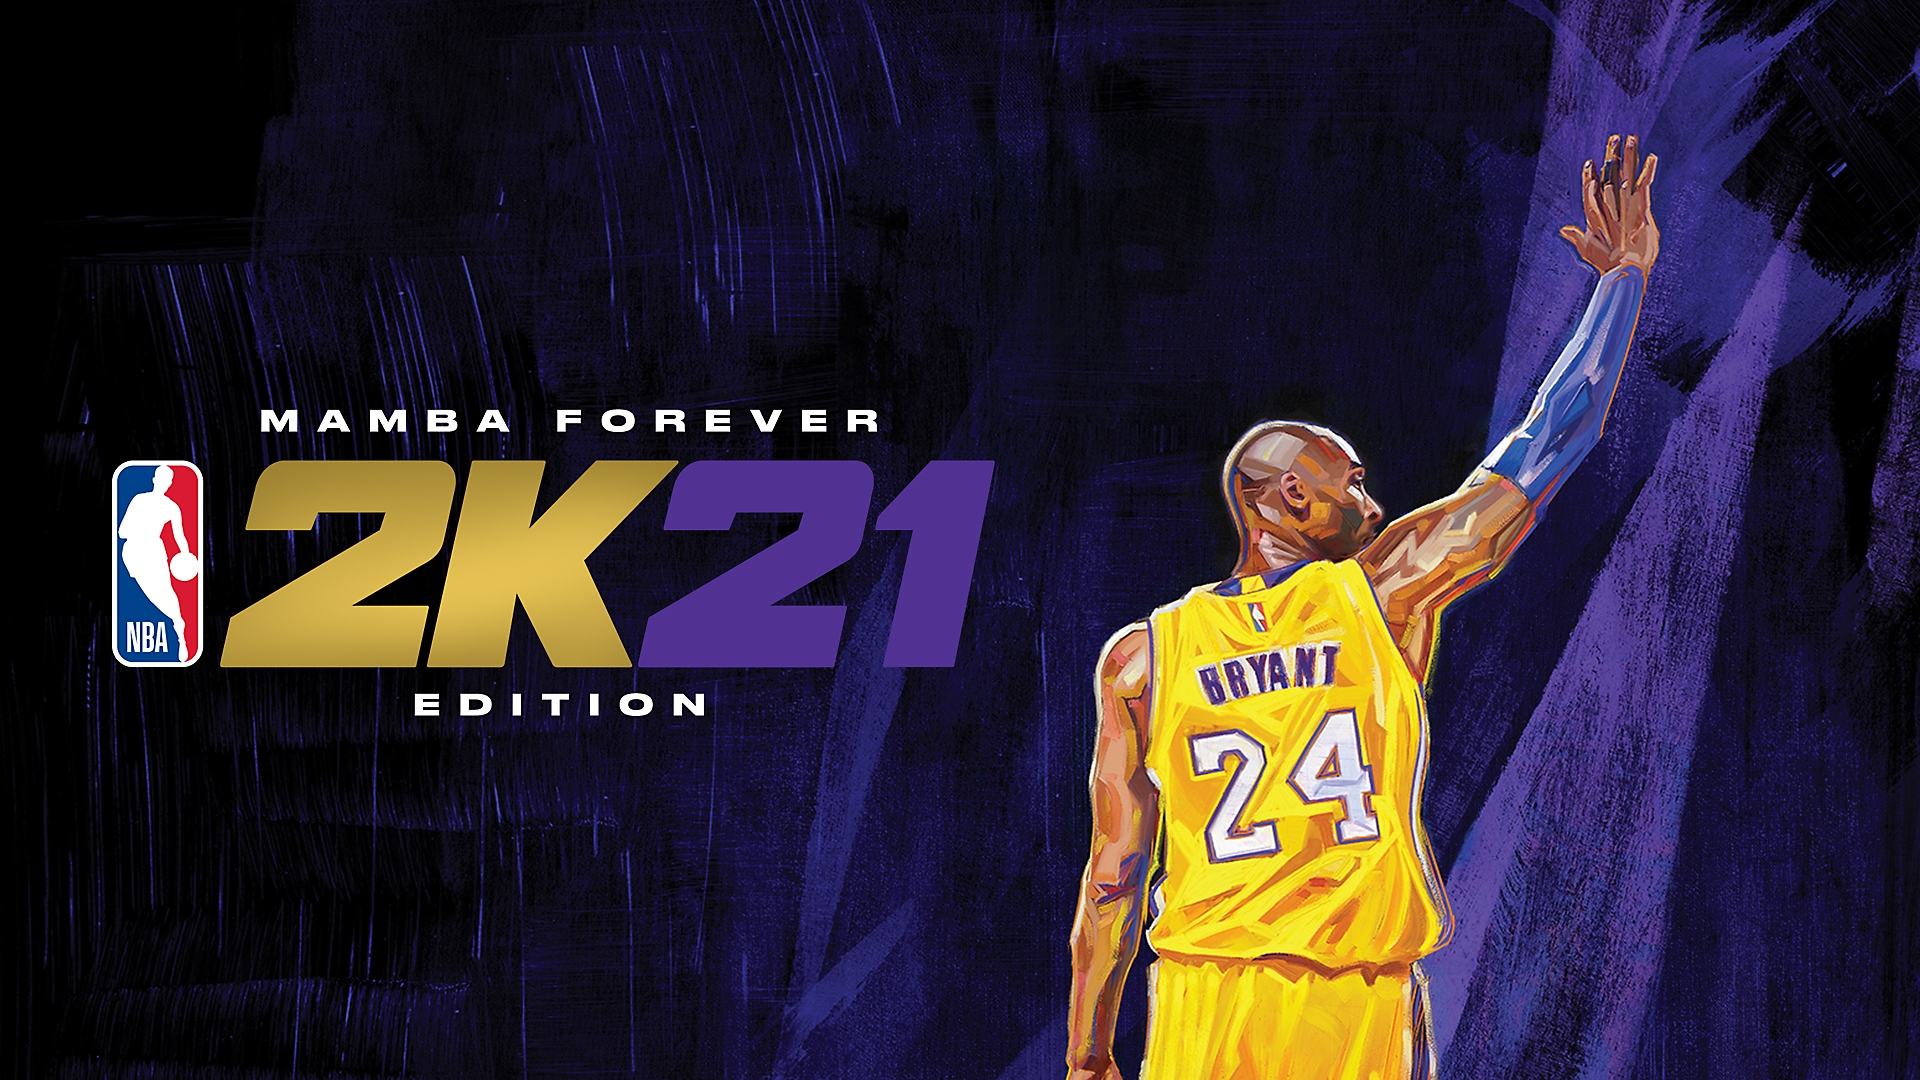 NBA 2K21 Mamba Edition kapak görseli